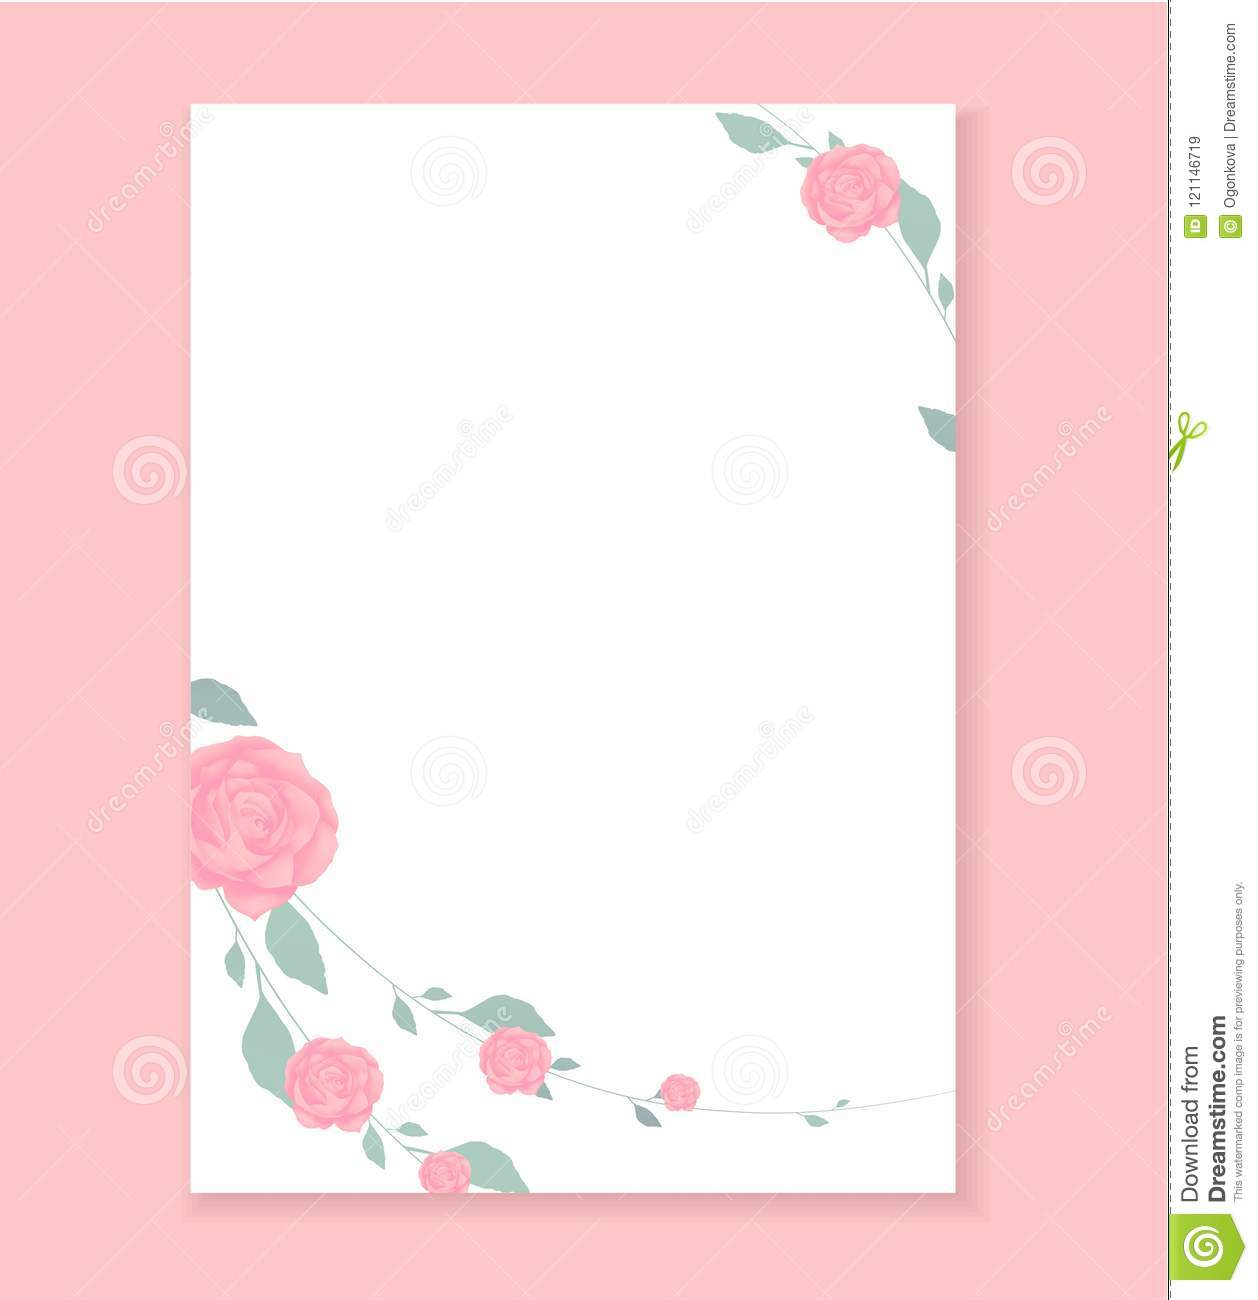 love letter blank template with rose flower pattern background